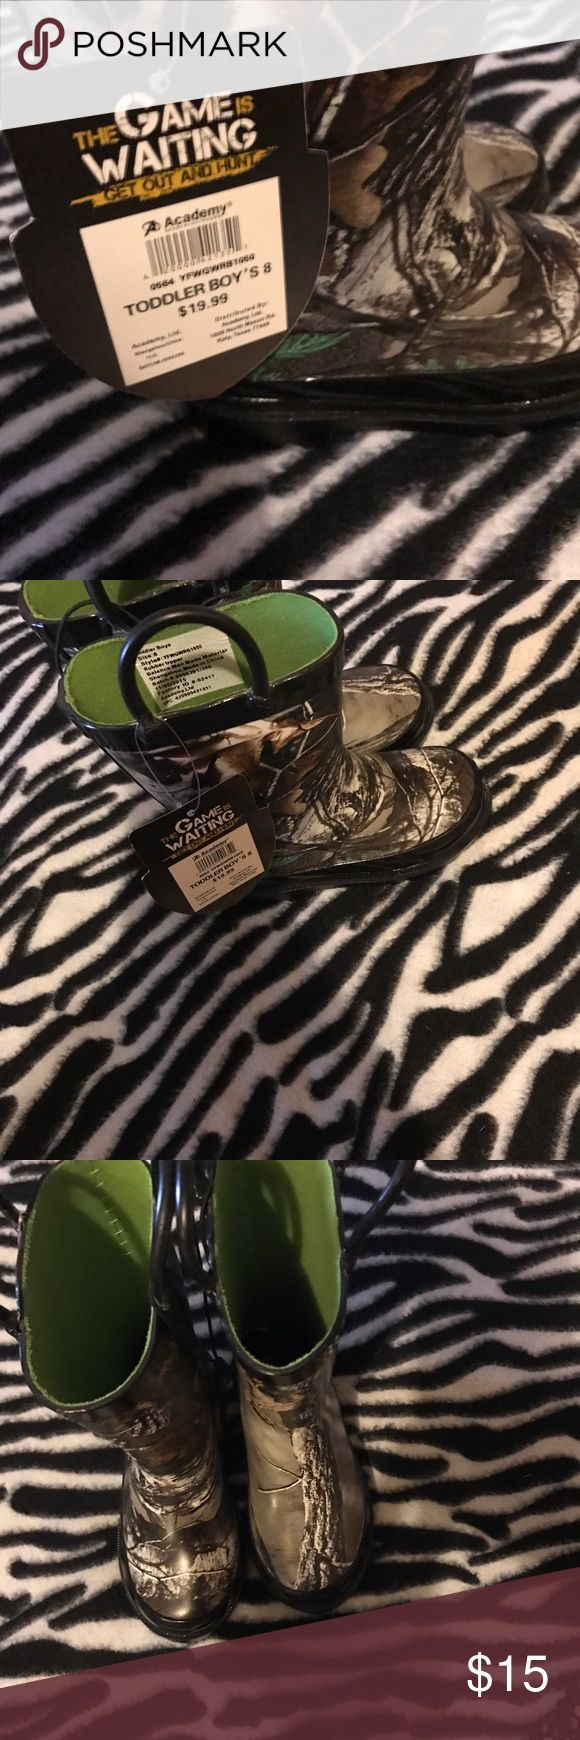 Selling this Toddler Boy's rain boots on Poshmark! My username is: itemsforcheap. #shopmycloset #poshmark #fashion #shopping #style #forsale #Game Winner #Shoes